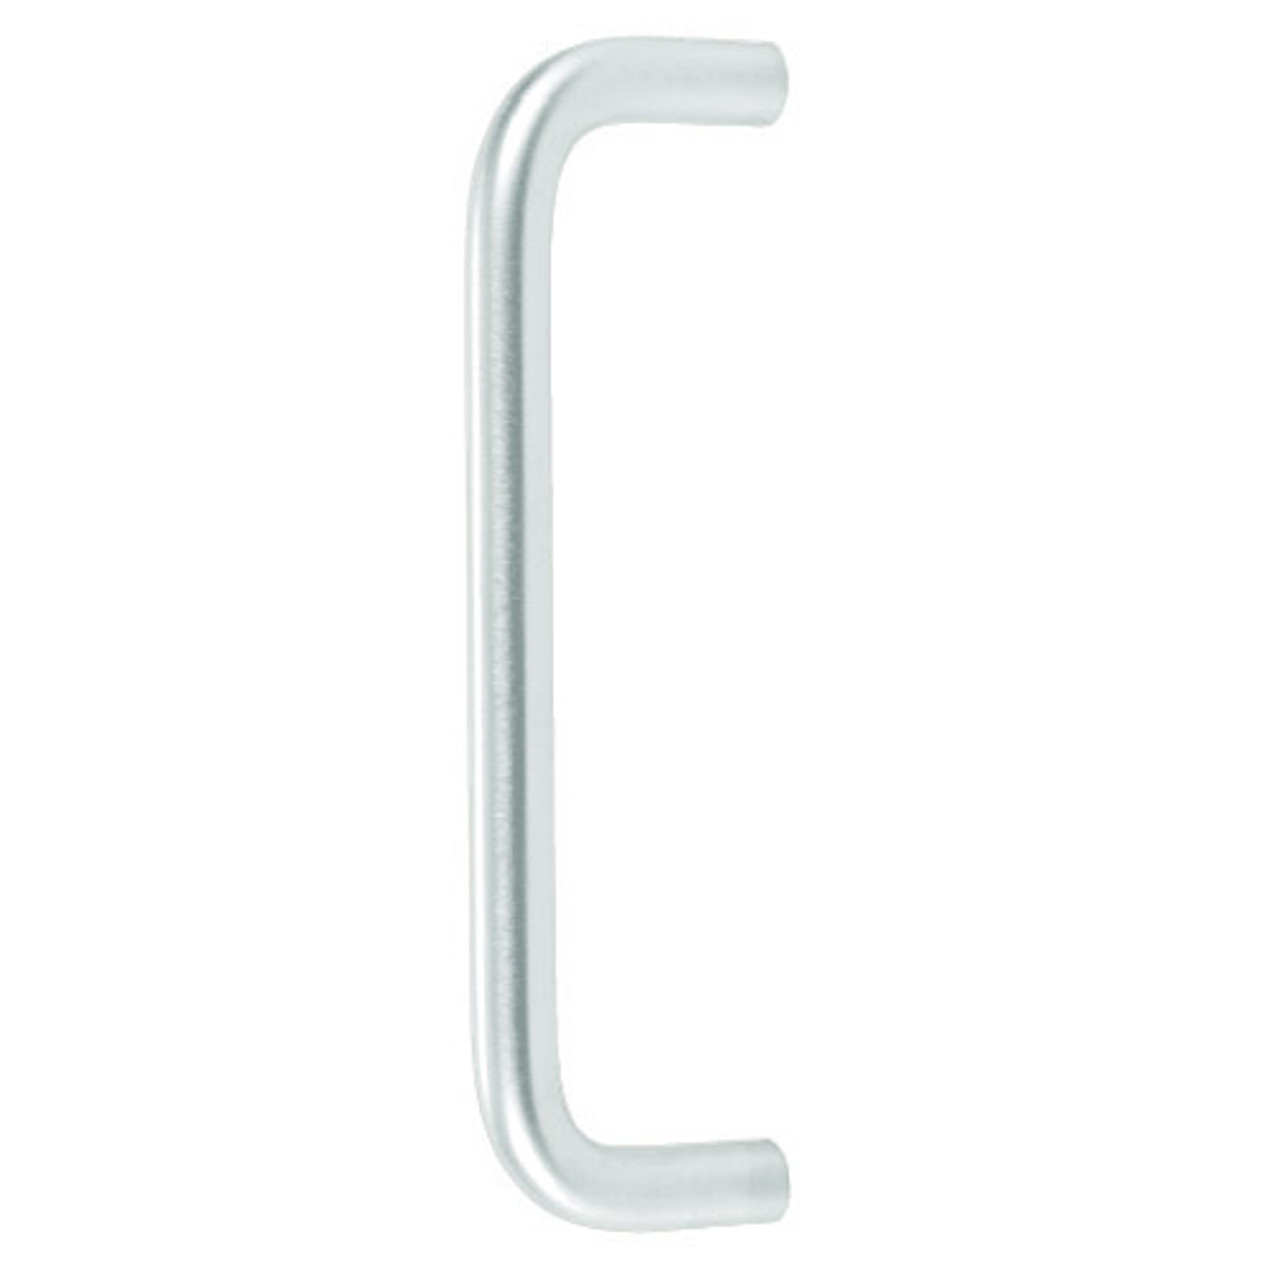 66-625 Don Jo Wire Pull in Polished Chrome Finish